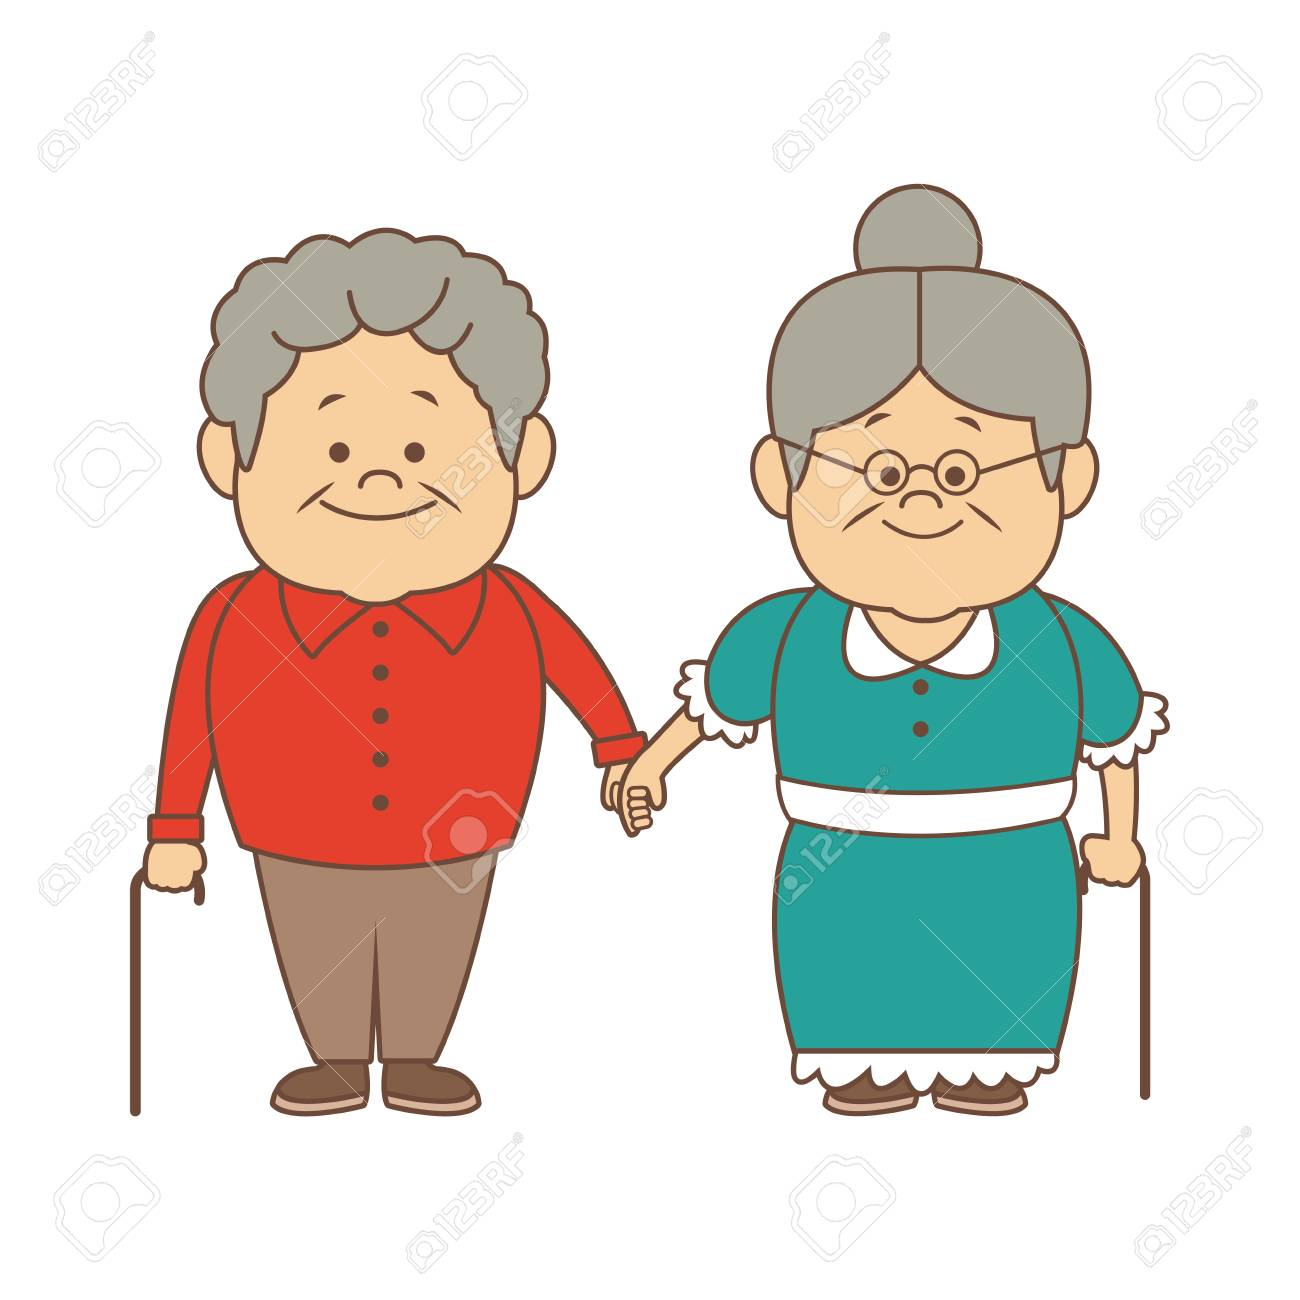 Grandmother And Grandfather Clipart Free Download Clip Art.